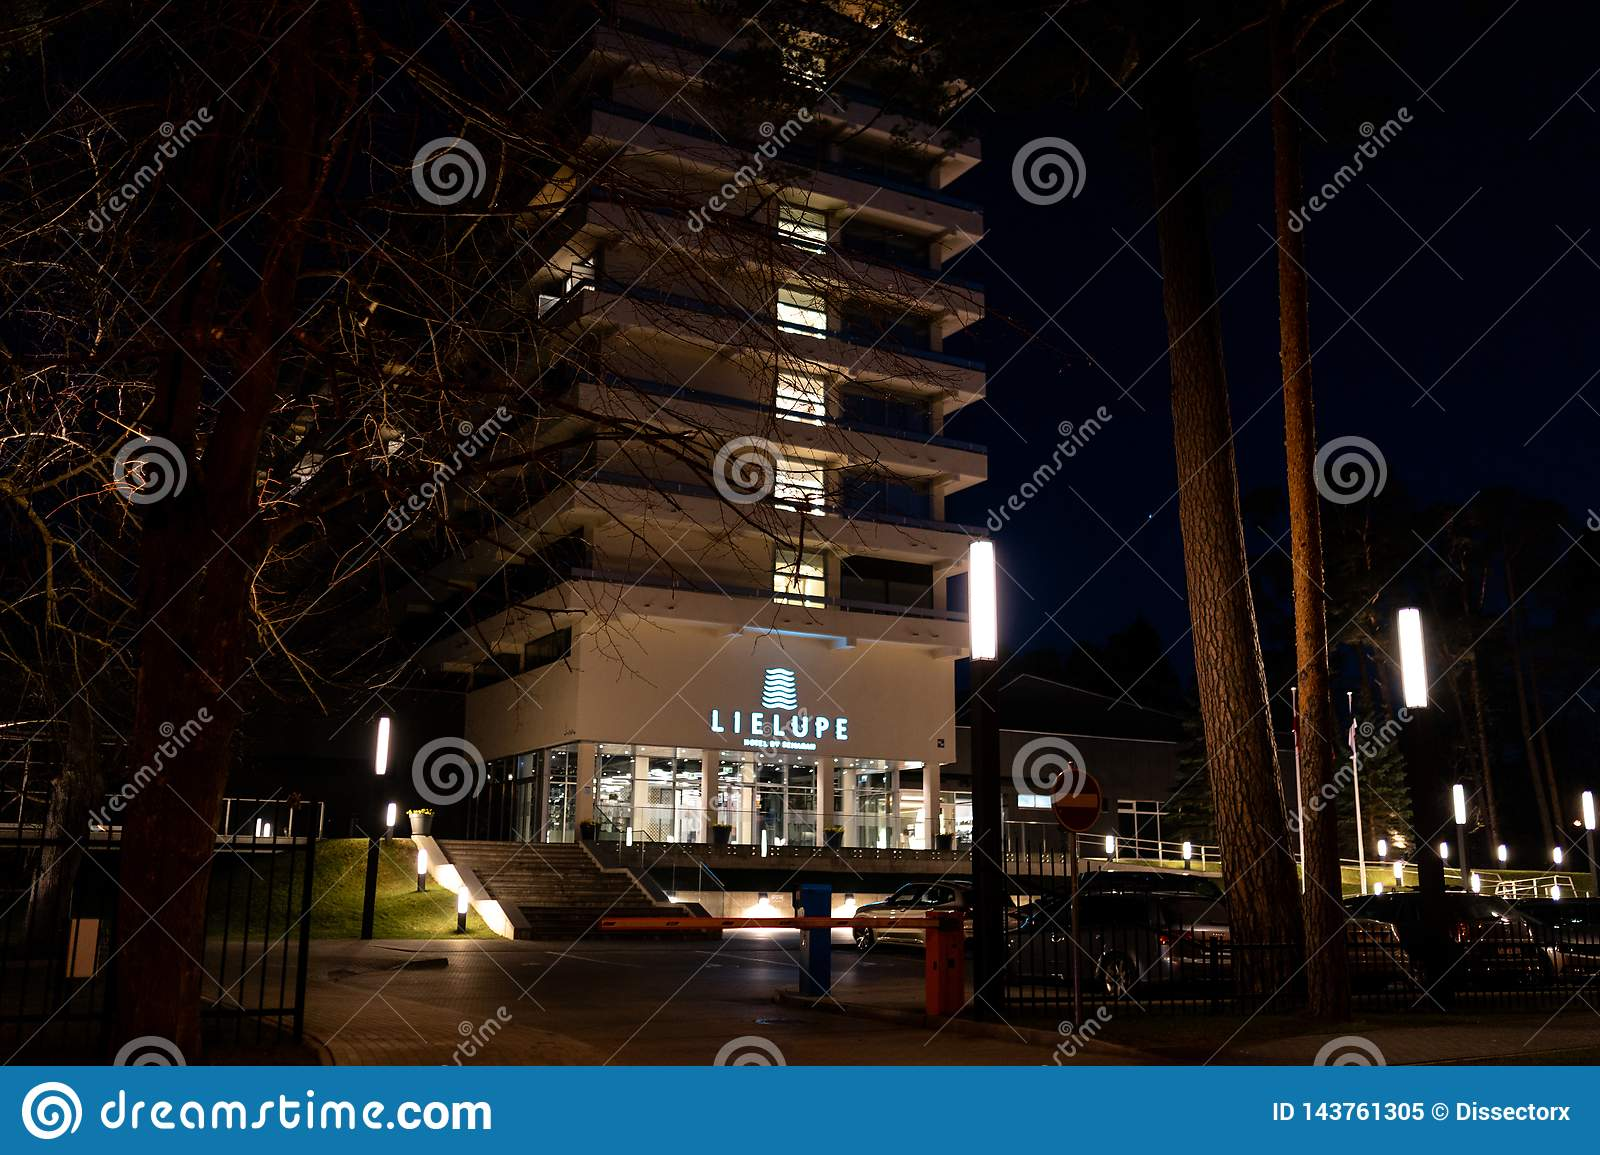 JURMALA, LATVIA - APRIL 2, 2019: Semarah Hotel Lielupe at night - Front entrance - Popular conference hall for people